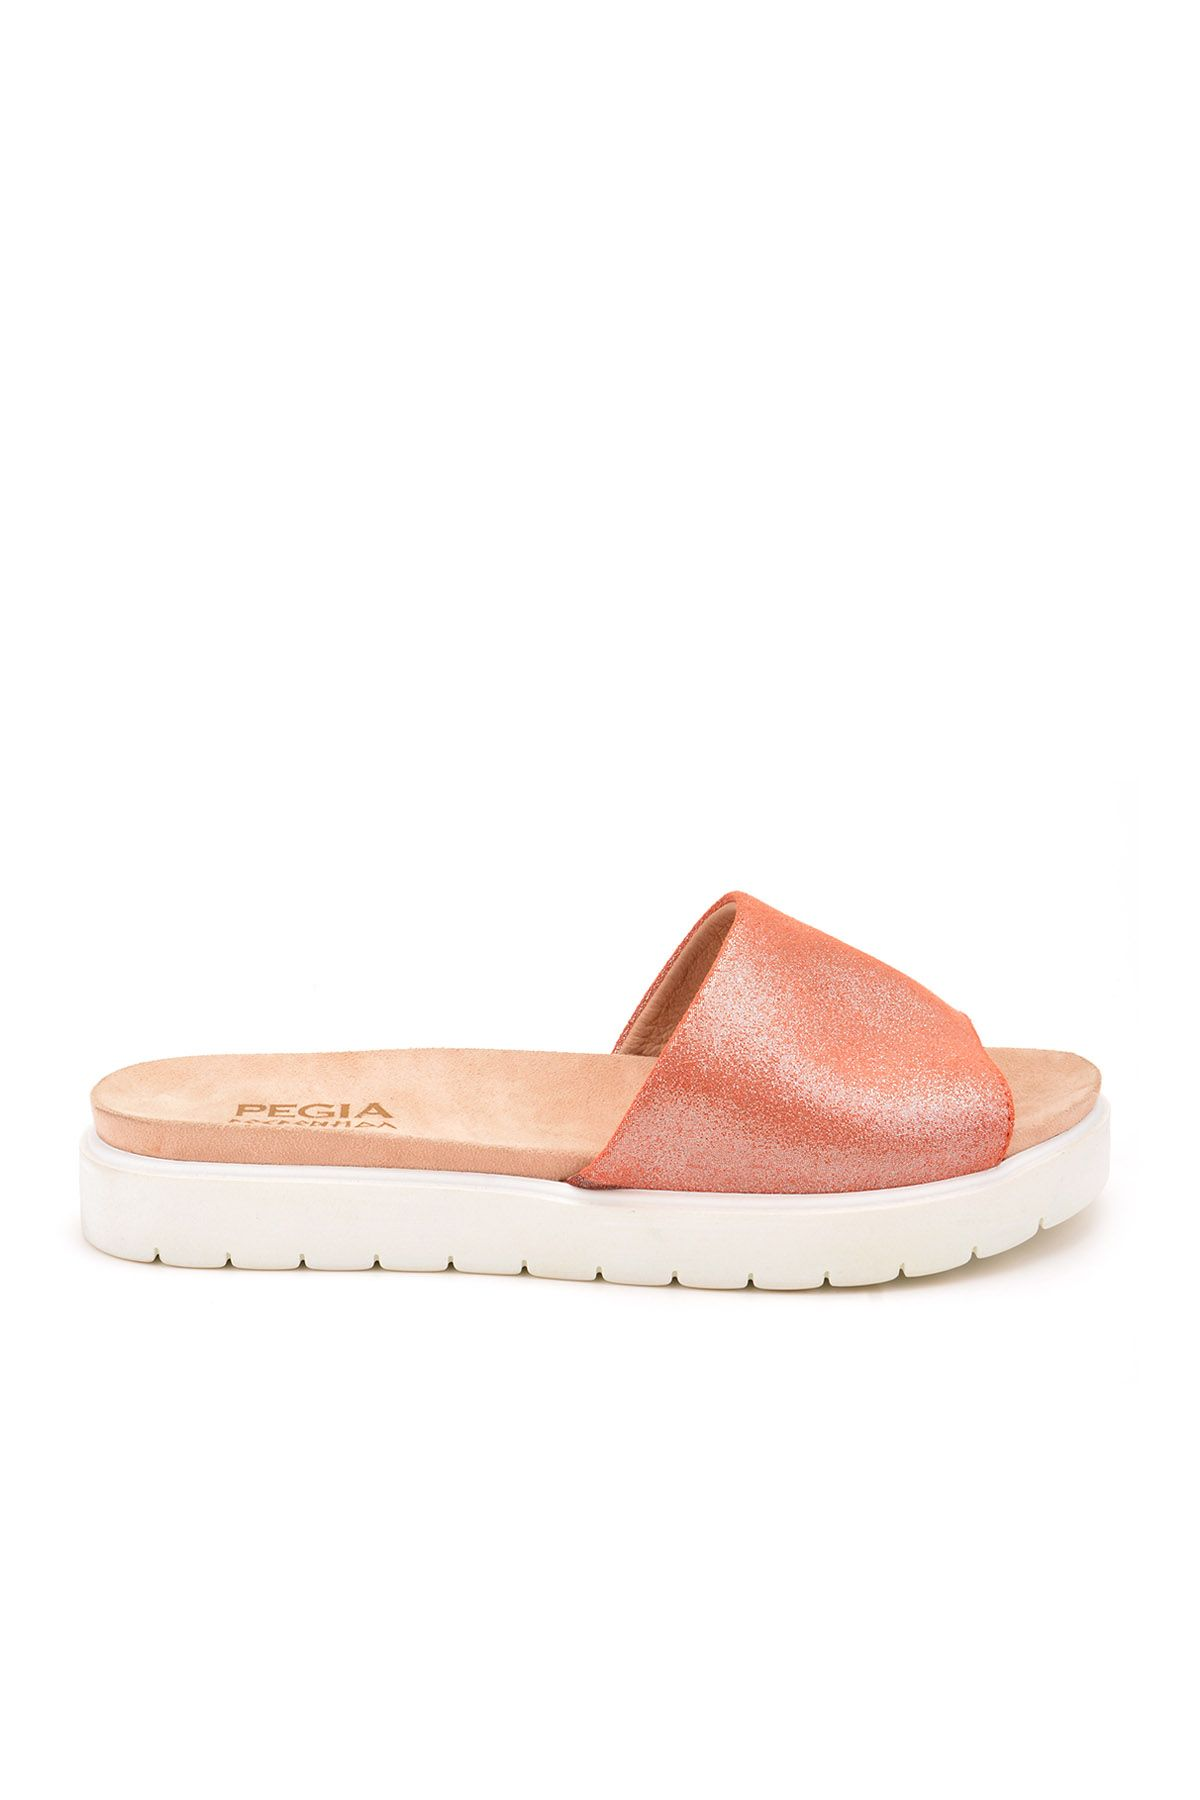 Pegia Drancy Women Slippers From Genuine Leather Pink